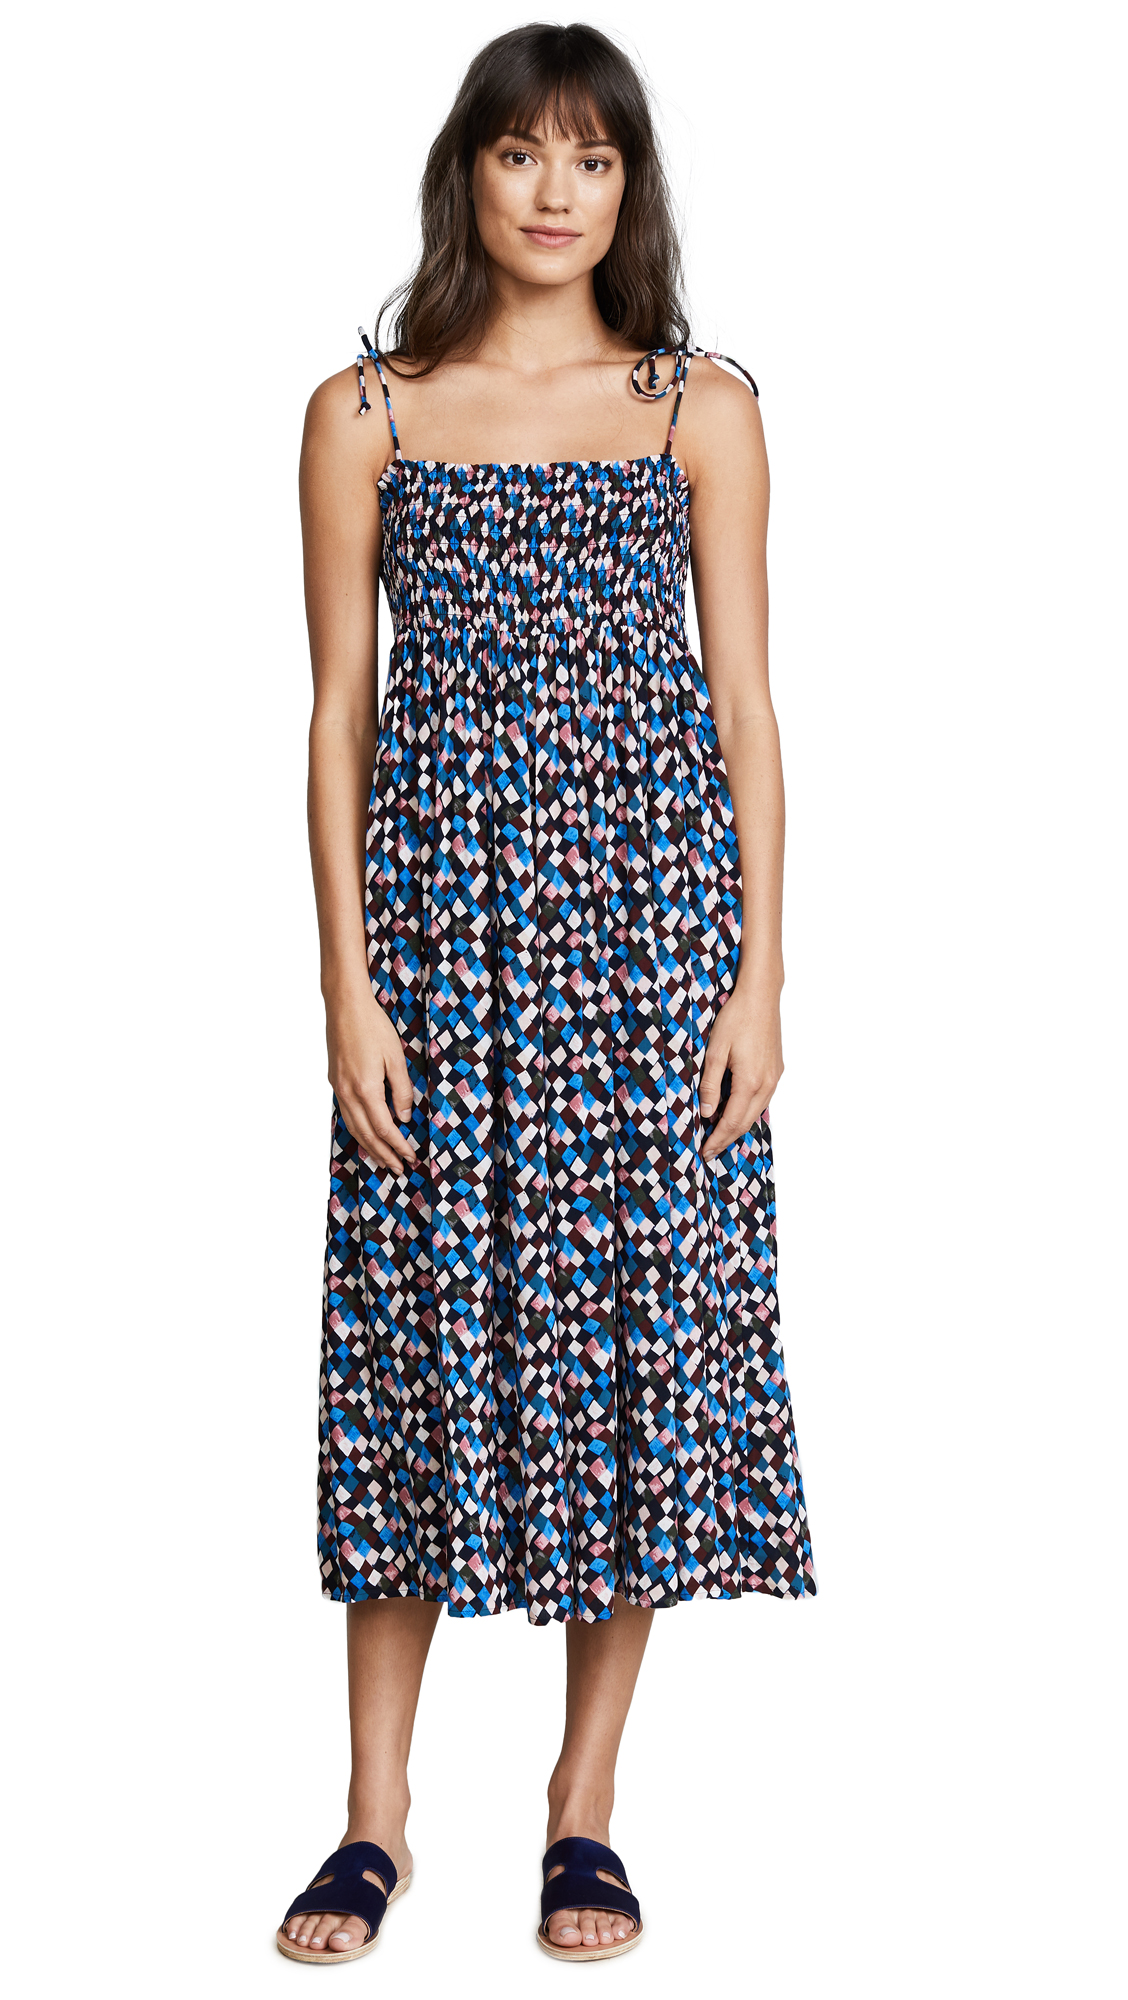 Tory Burch Prism Convertible Beach Dress